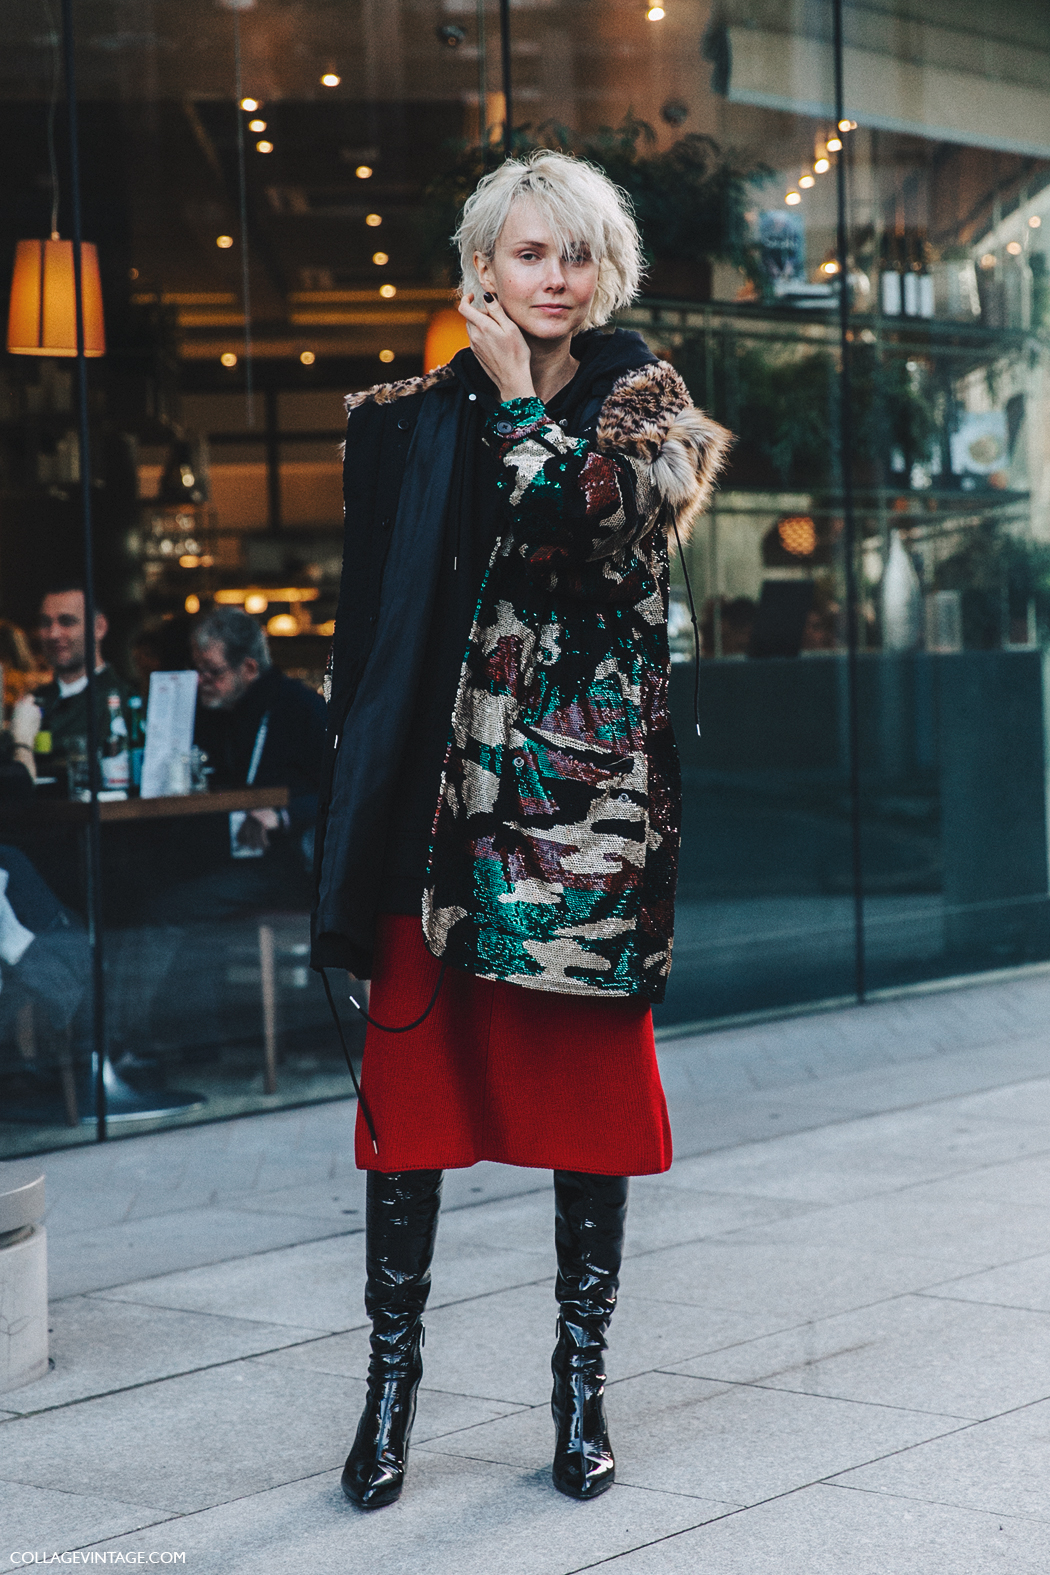 LFW-London_Fashion_Week_Fall_16-Street_Style-Collage_Vintage-Red_Midi_Skirt-Sequined_Parka-Christopher_Kane-Olga_Karput-